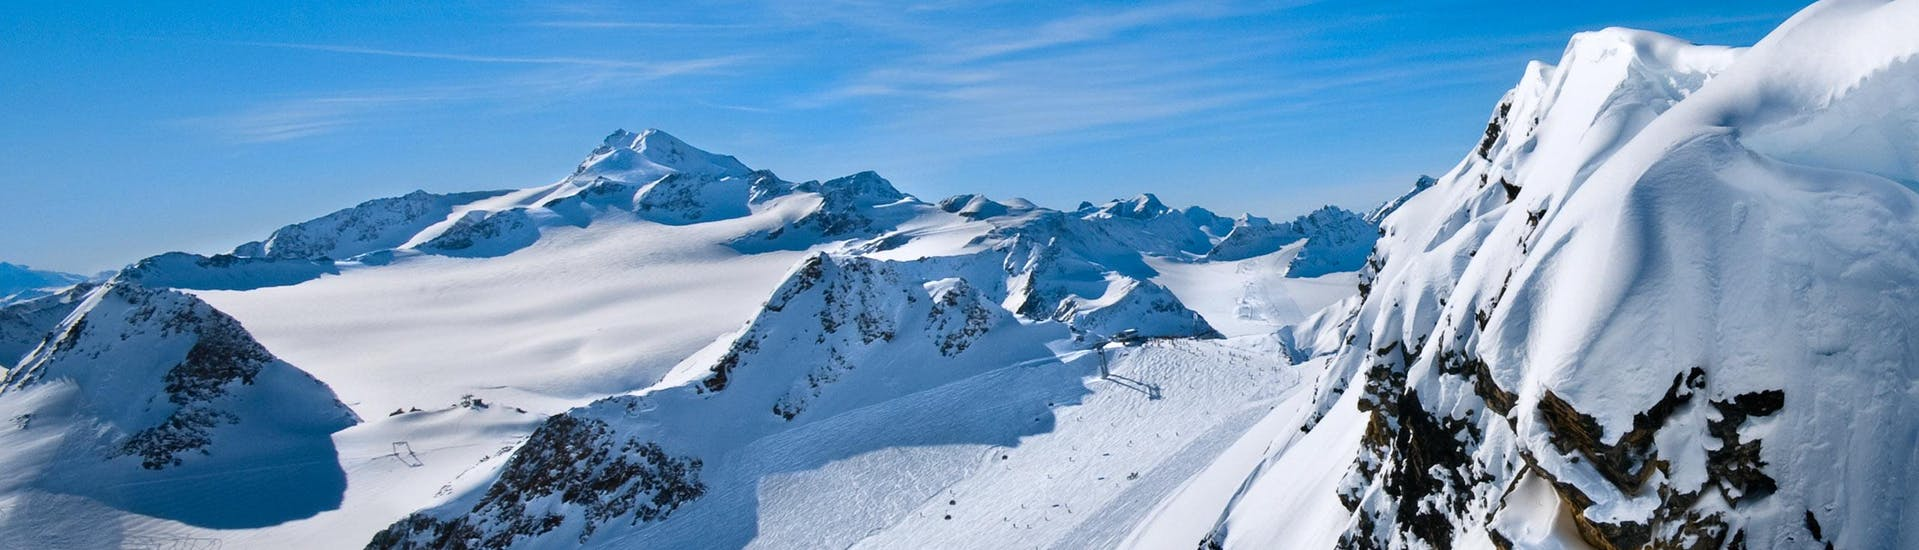 A view of a snowy mountain top in the ski resort of Eggalm-Tux-Lanersbach, where ski schools gather to start their ski lessons.